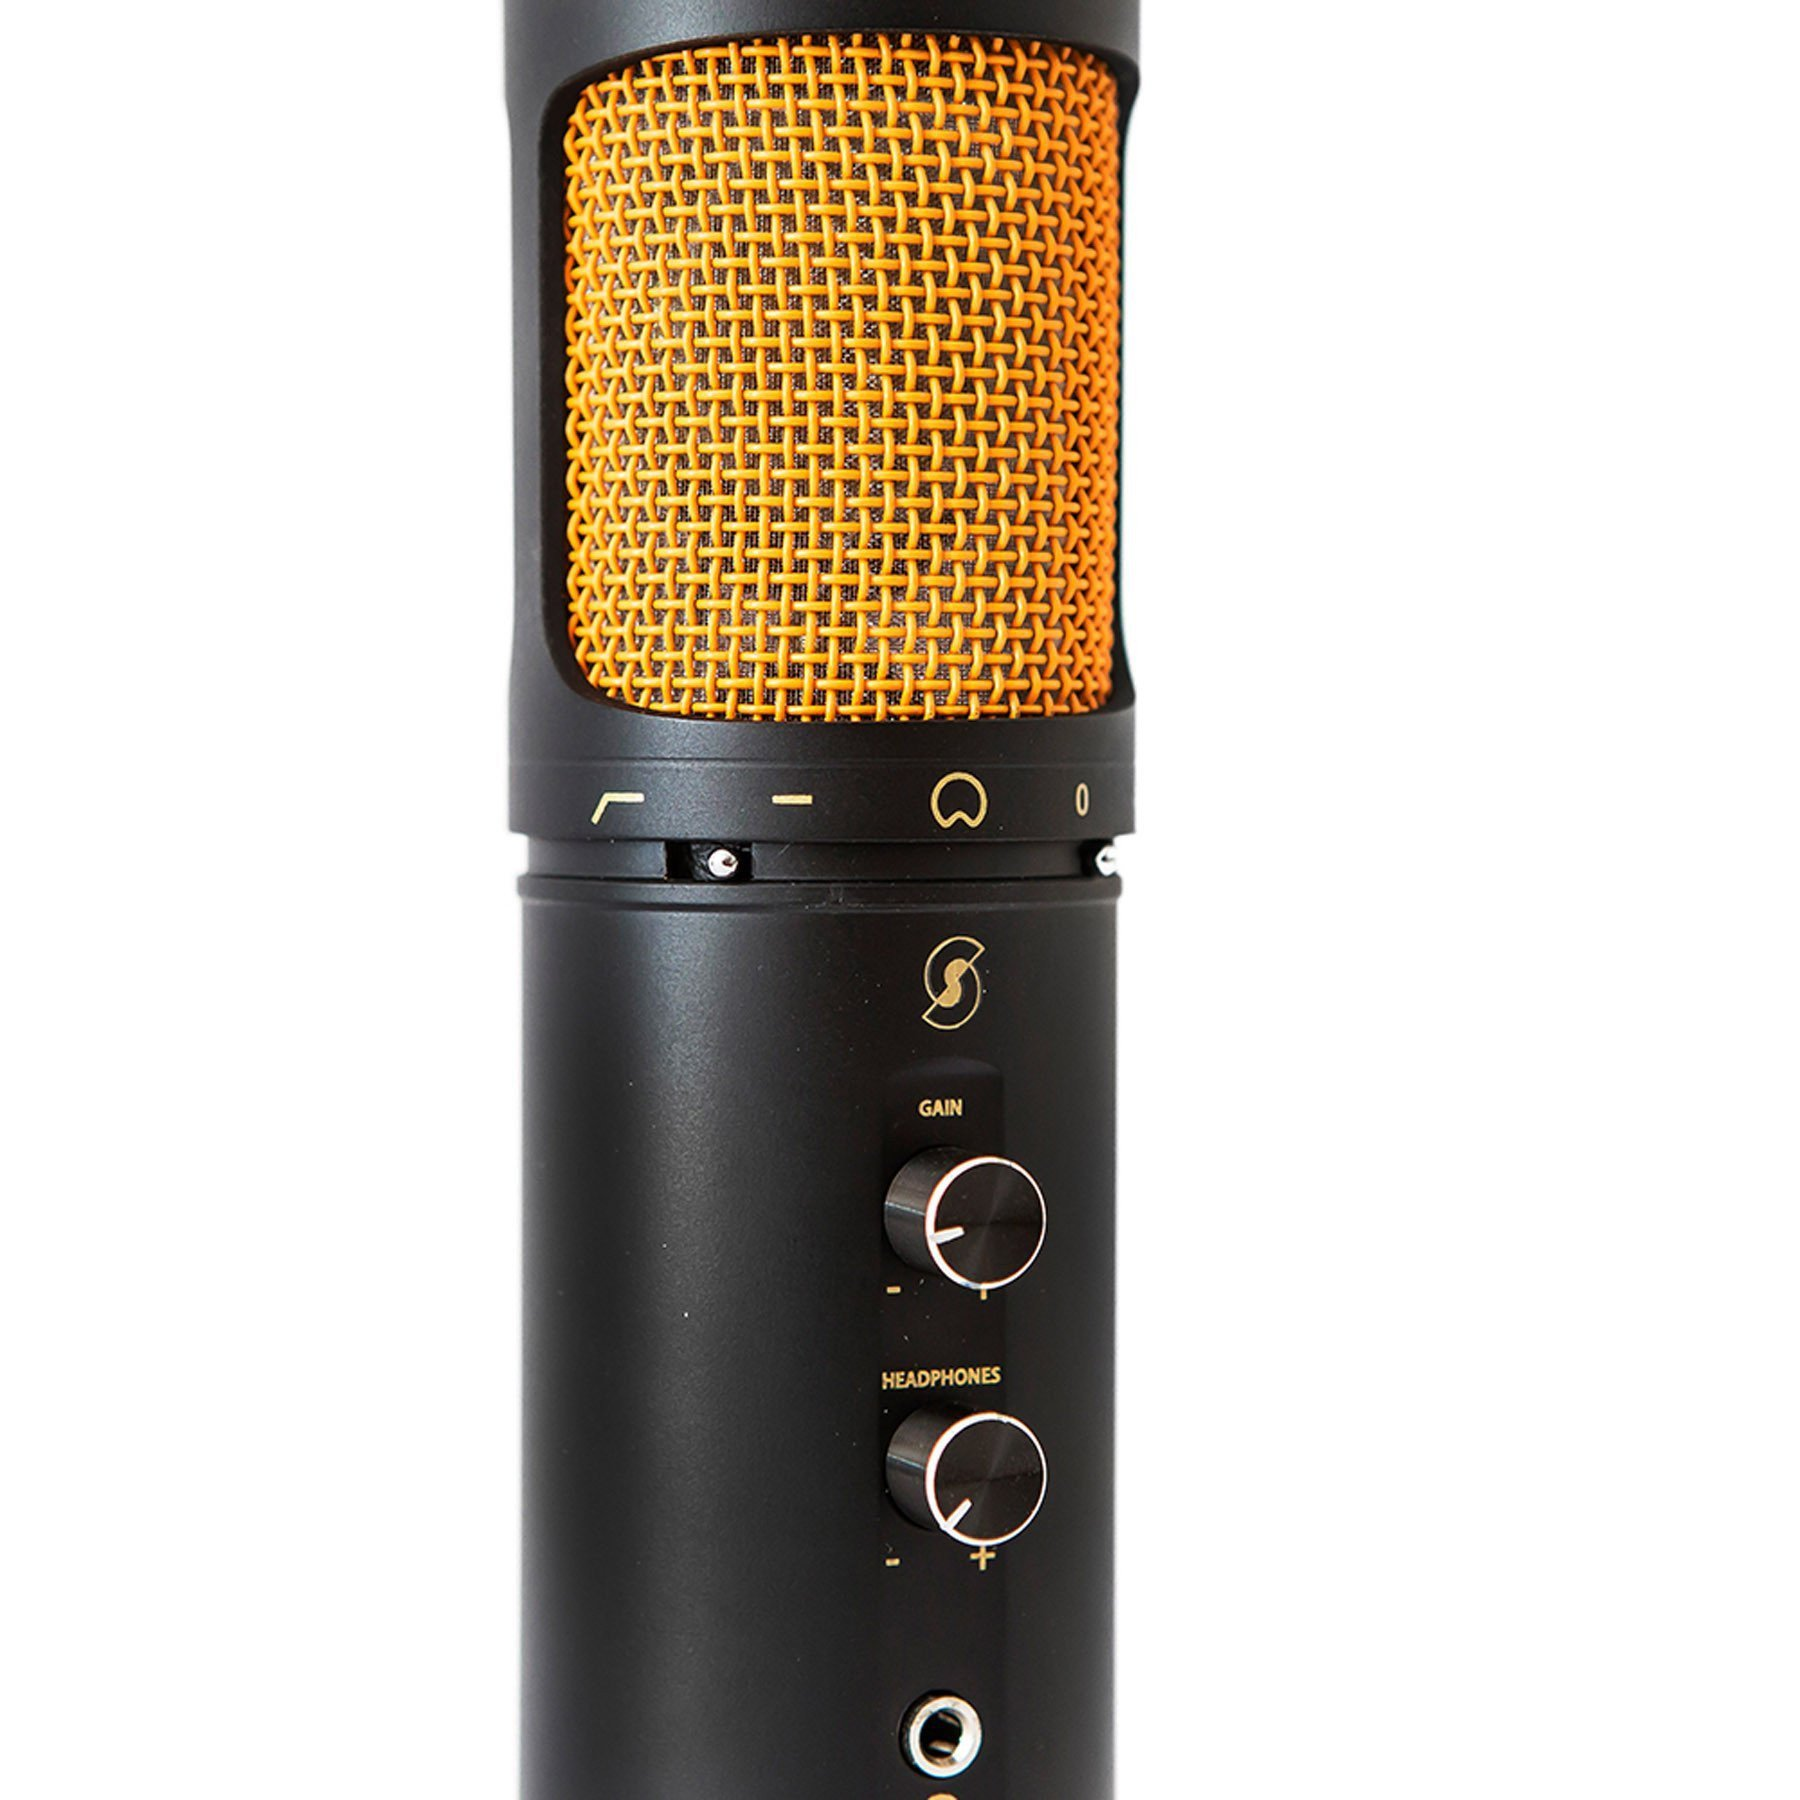 SL600 Condenser USB Microphone with Live Monitoring – Editors Keys